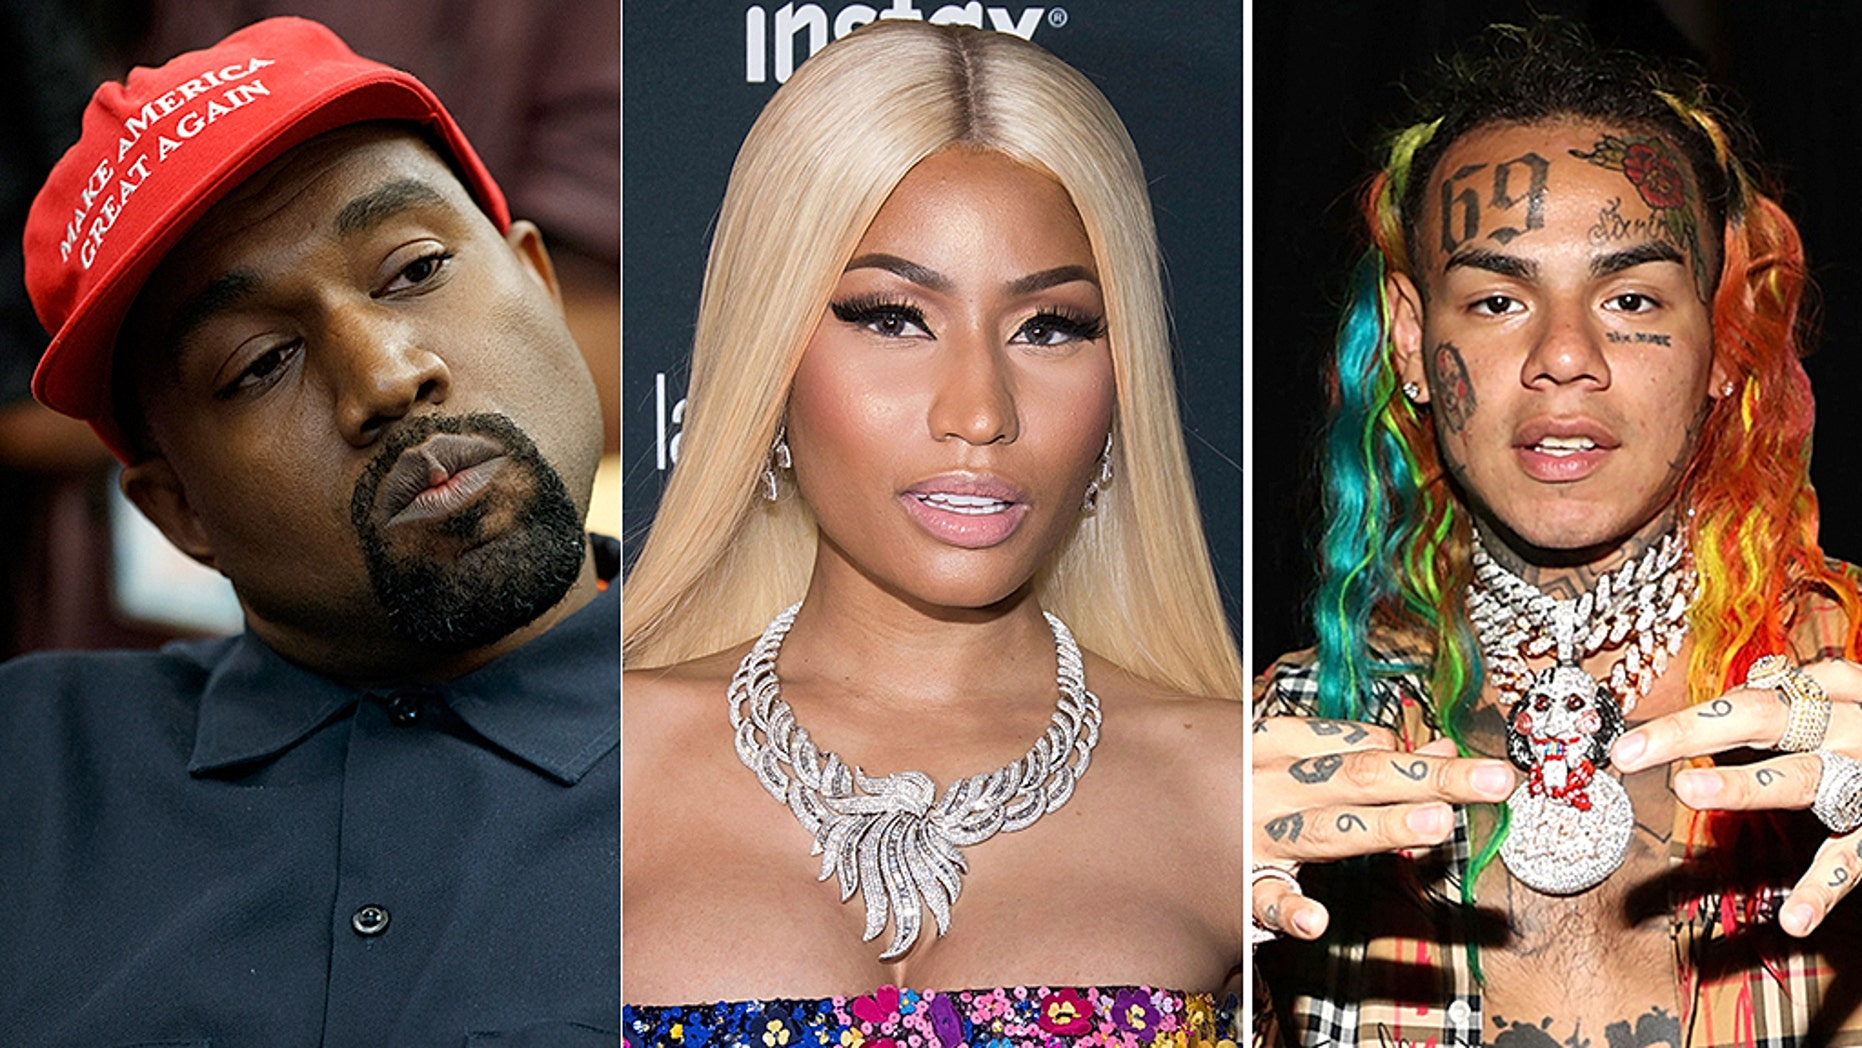 Shots fired during Tekashi 6ix9ine, Kanye West, Nicki Minaj video shoot